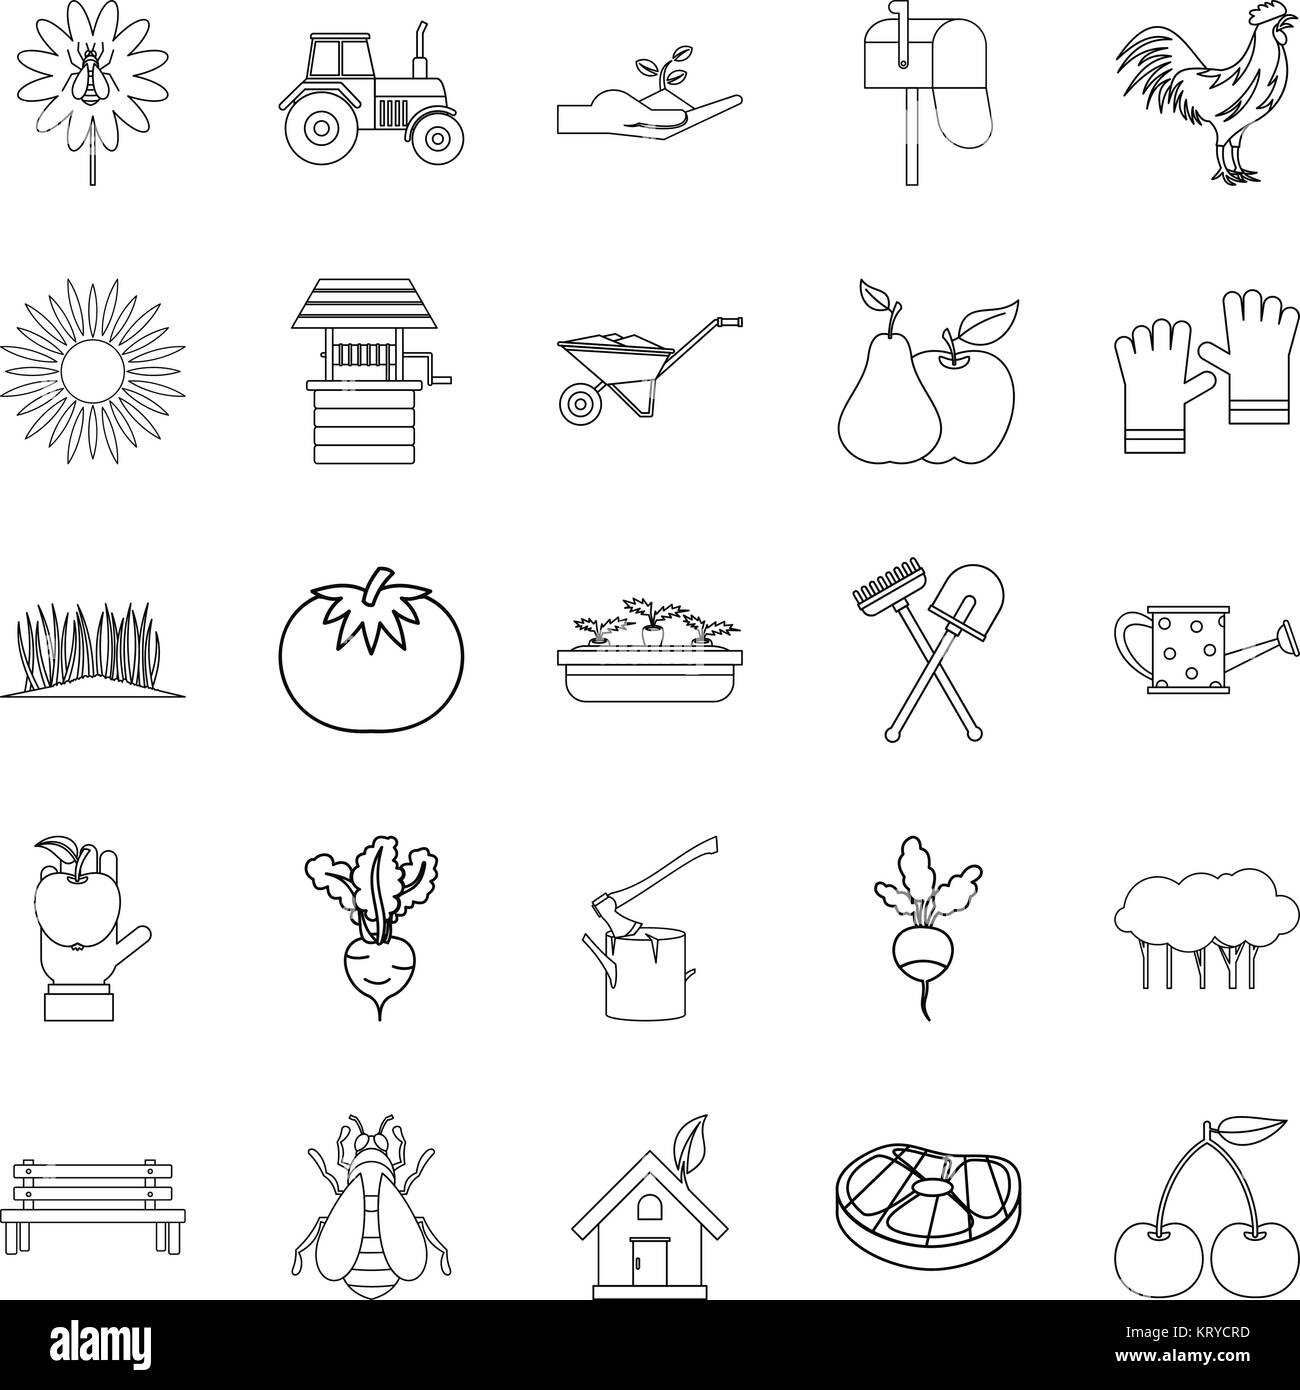 Hamlet icons set, outline style - Stock Vector